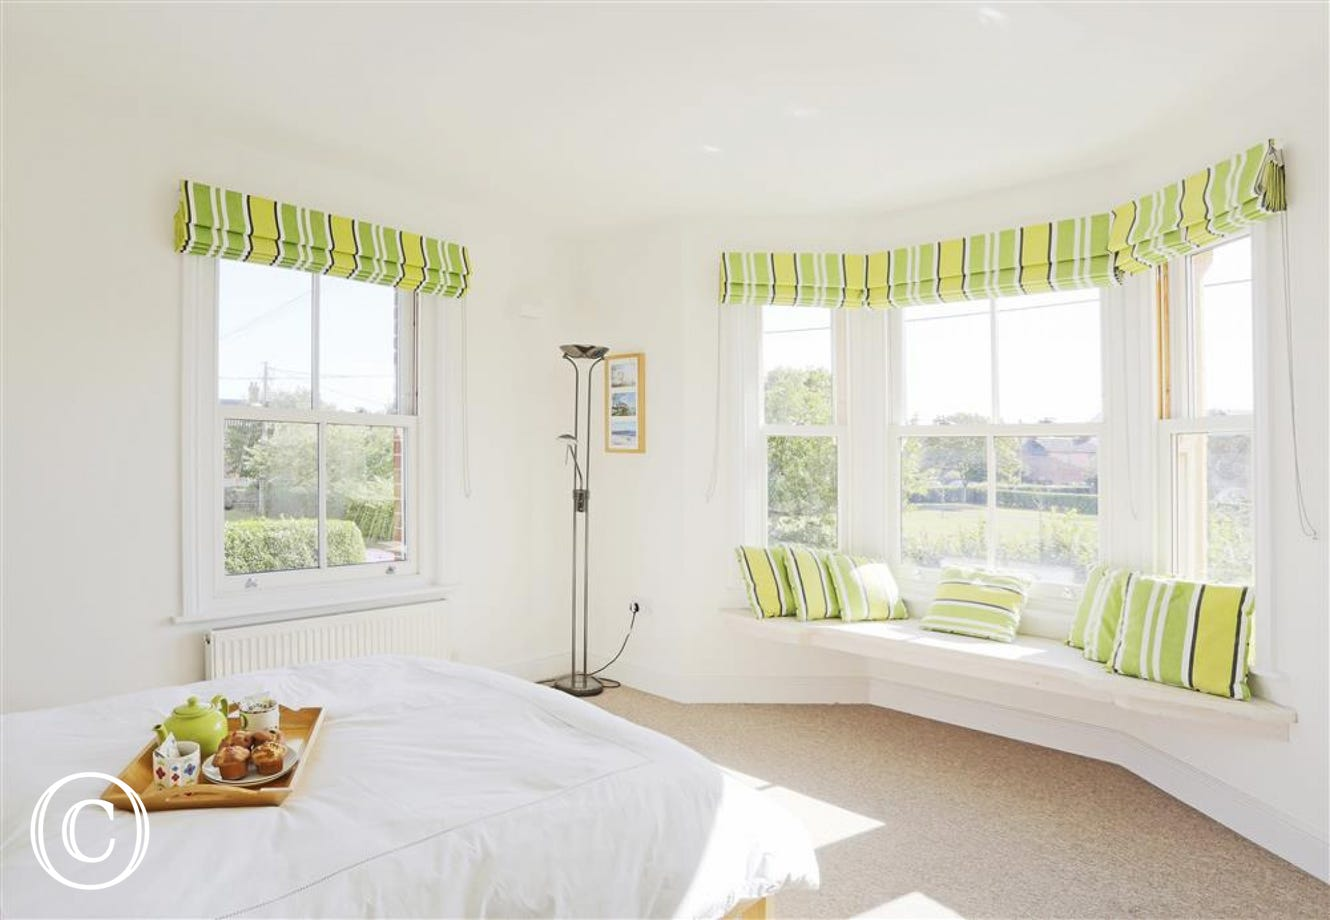 Sink into this divine bed and enjoy the spectacular views out onto St Edmunds Green.